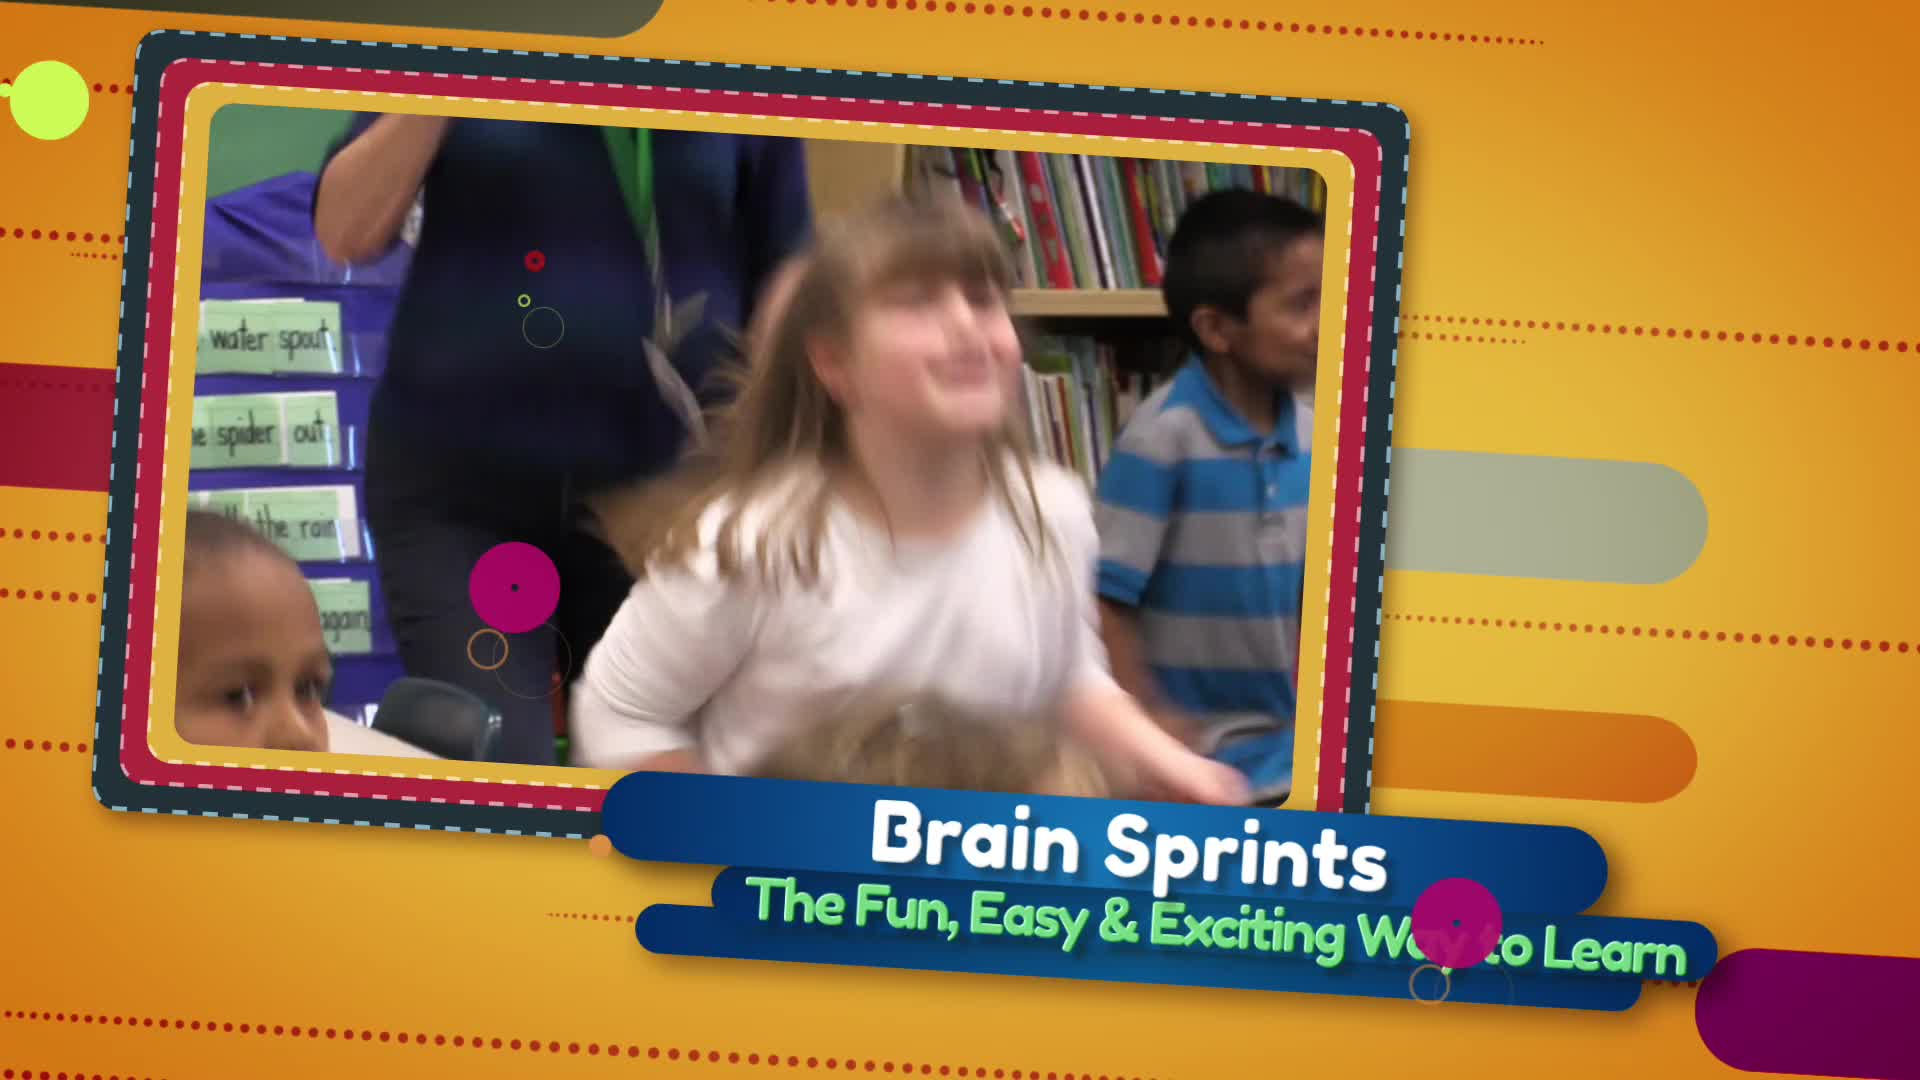 Ed Mayhew's Brain Sprints Math Lesson - Counting By Twos - Supercharged